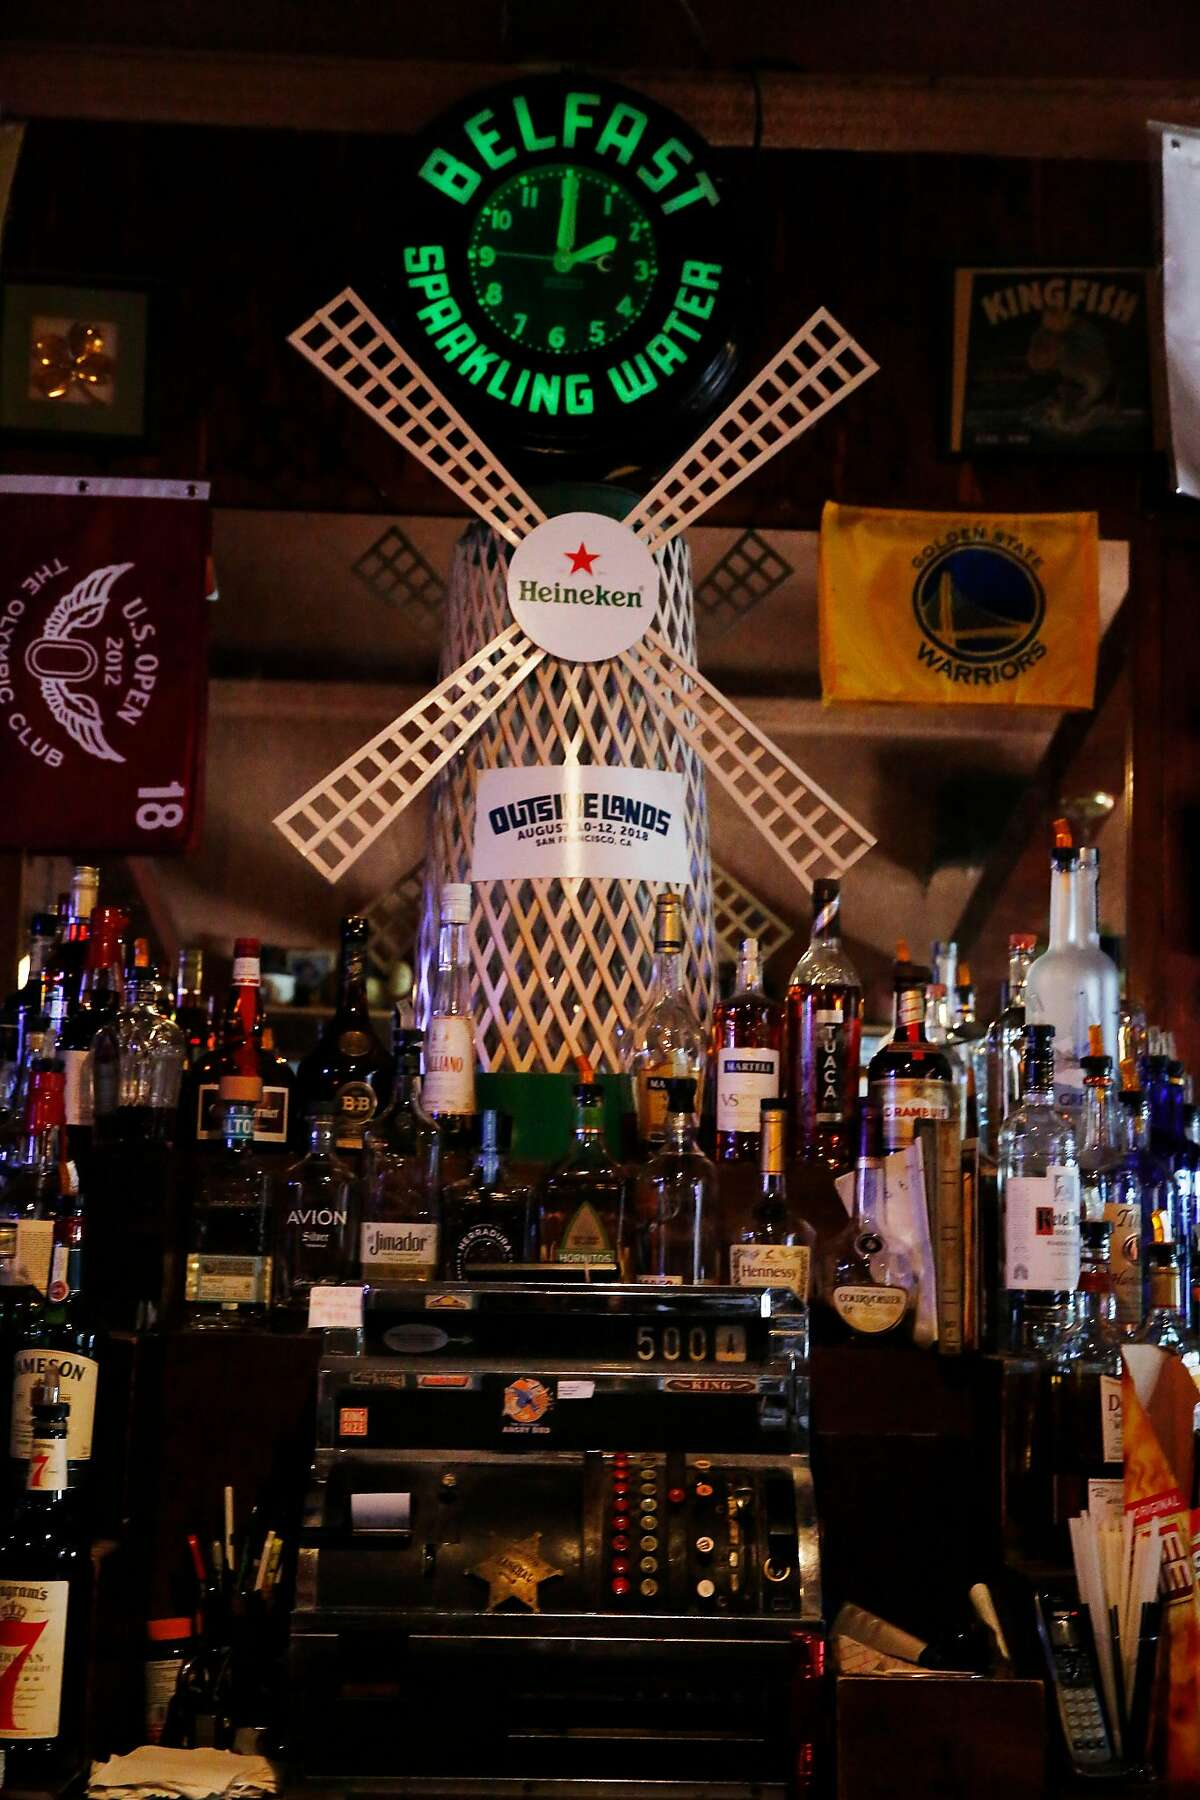 An original cash register and clock are seen at Portals Tavern on Wednesday, July 31, 2019 in San Francisco, Calif.